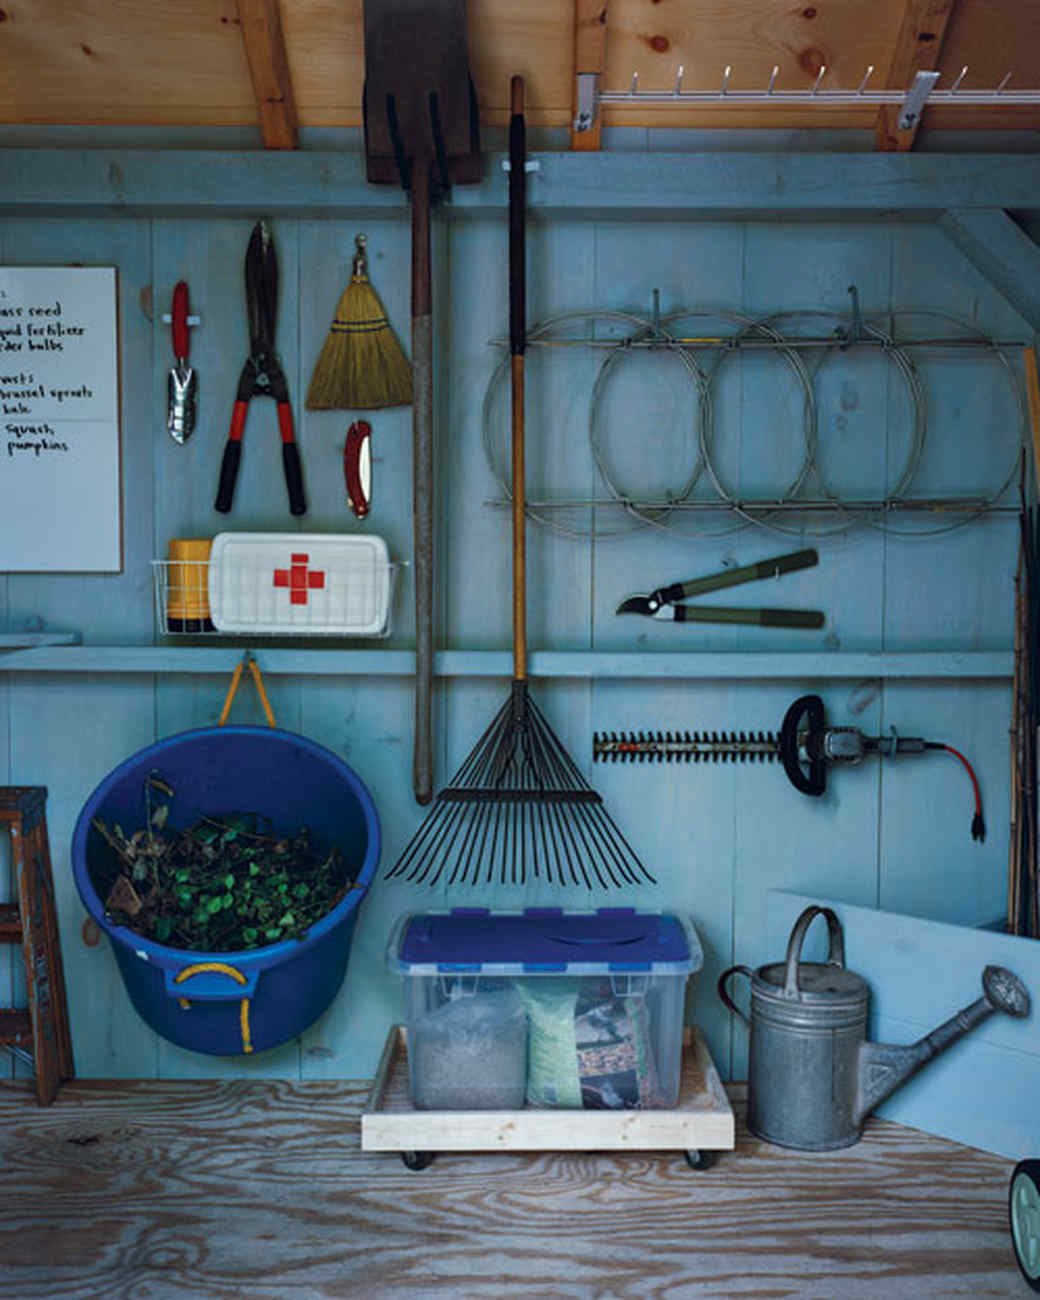 Shed How-To: Wooden Tray with Casters